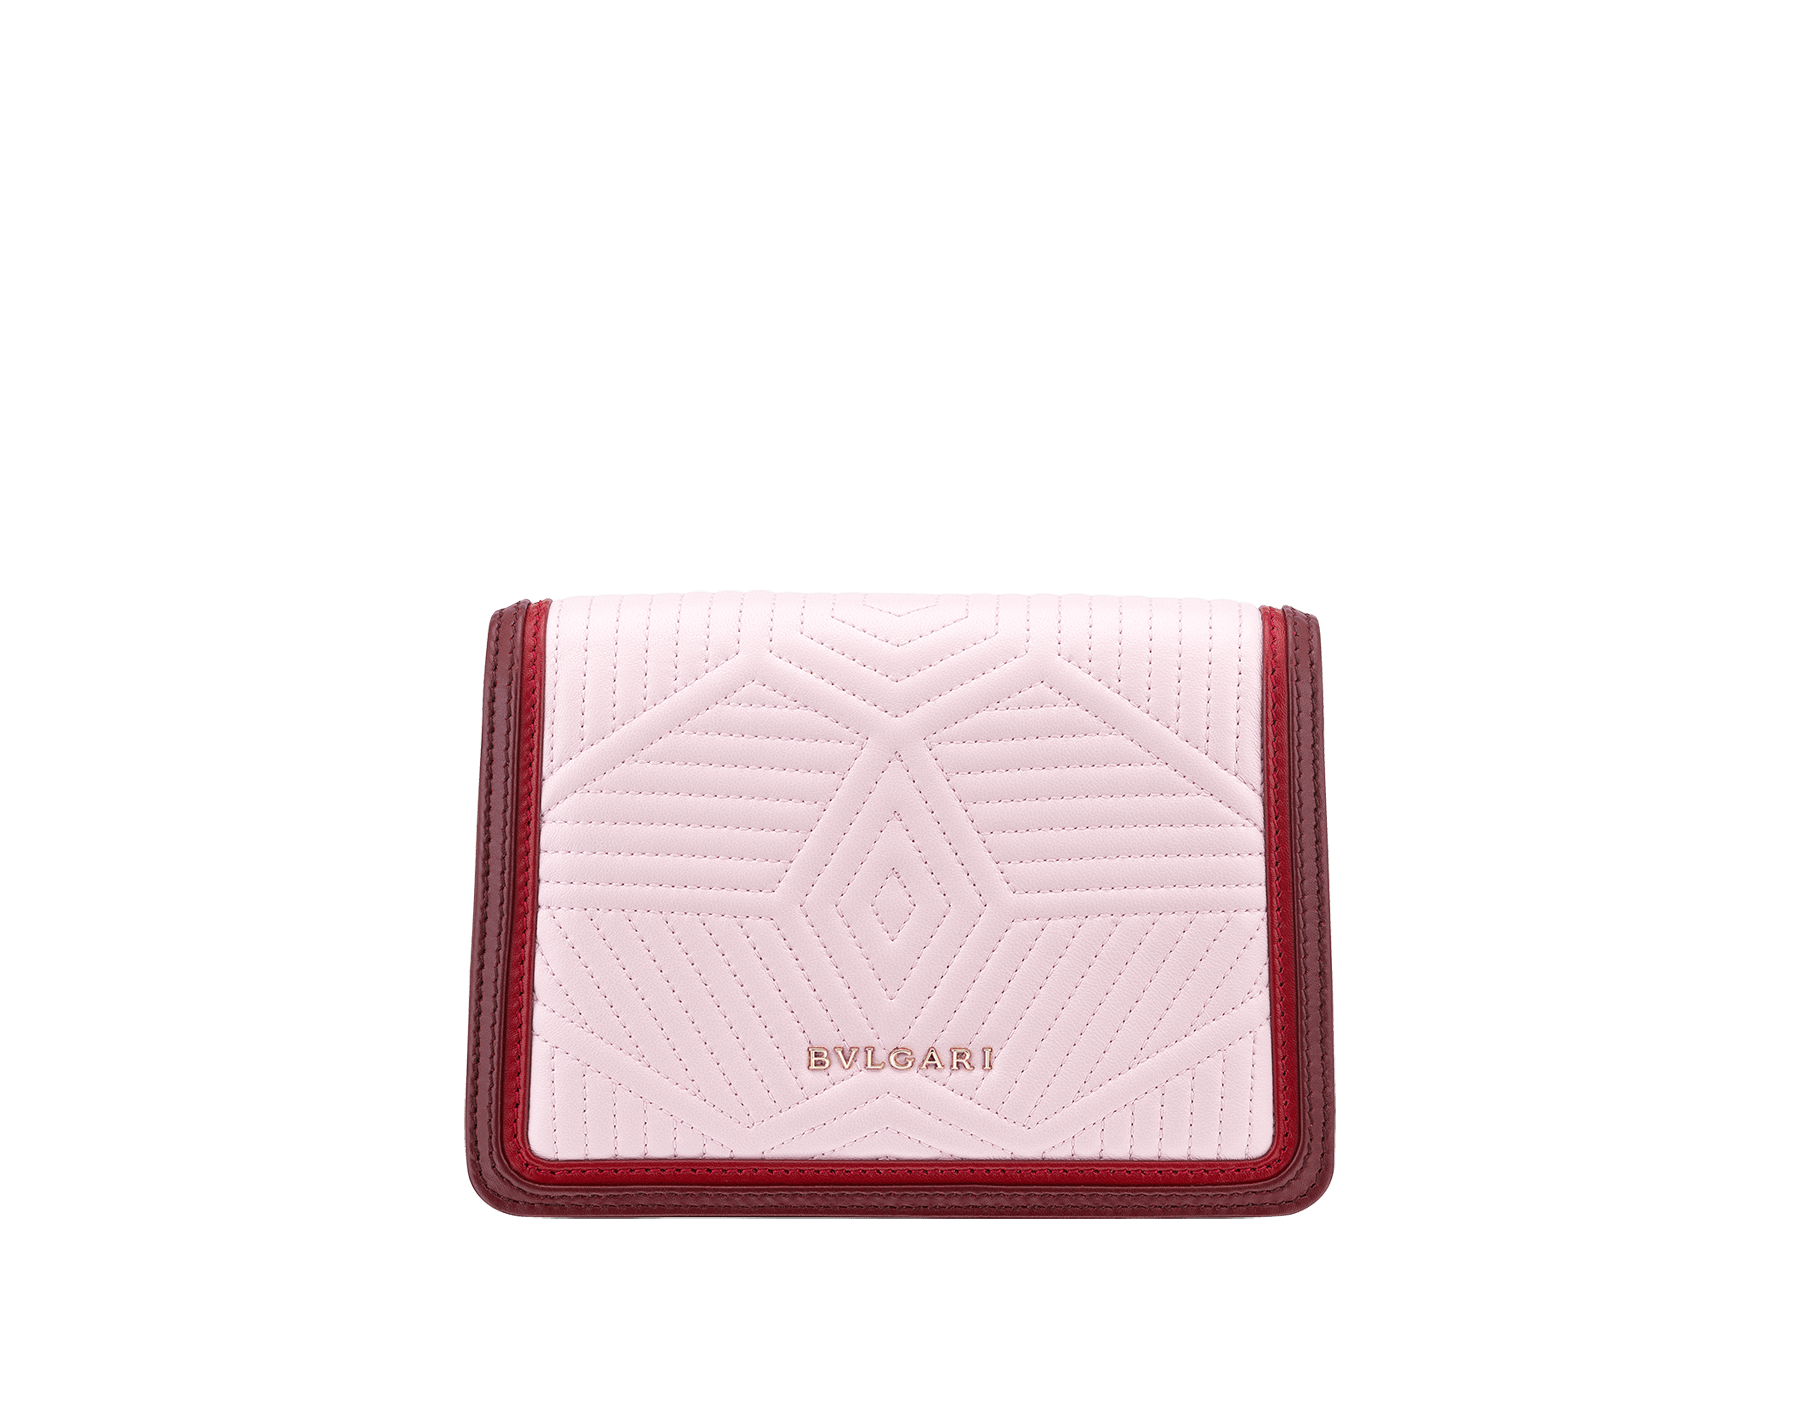 """Serpenti Diamond Blast"" crossbody micro bag in rosa di francia quilted nappa leather body and Roman garnet calf leather frames. Iconic snakehead closure in light gold plated brass enriched with black and ruby red enamel and black onyx eyes. 288844 image 3"